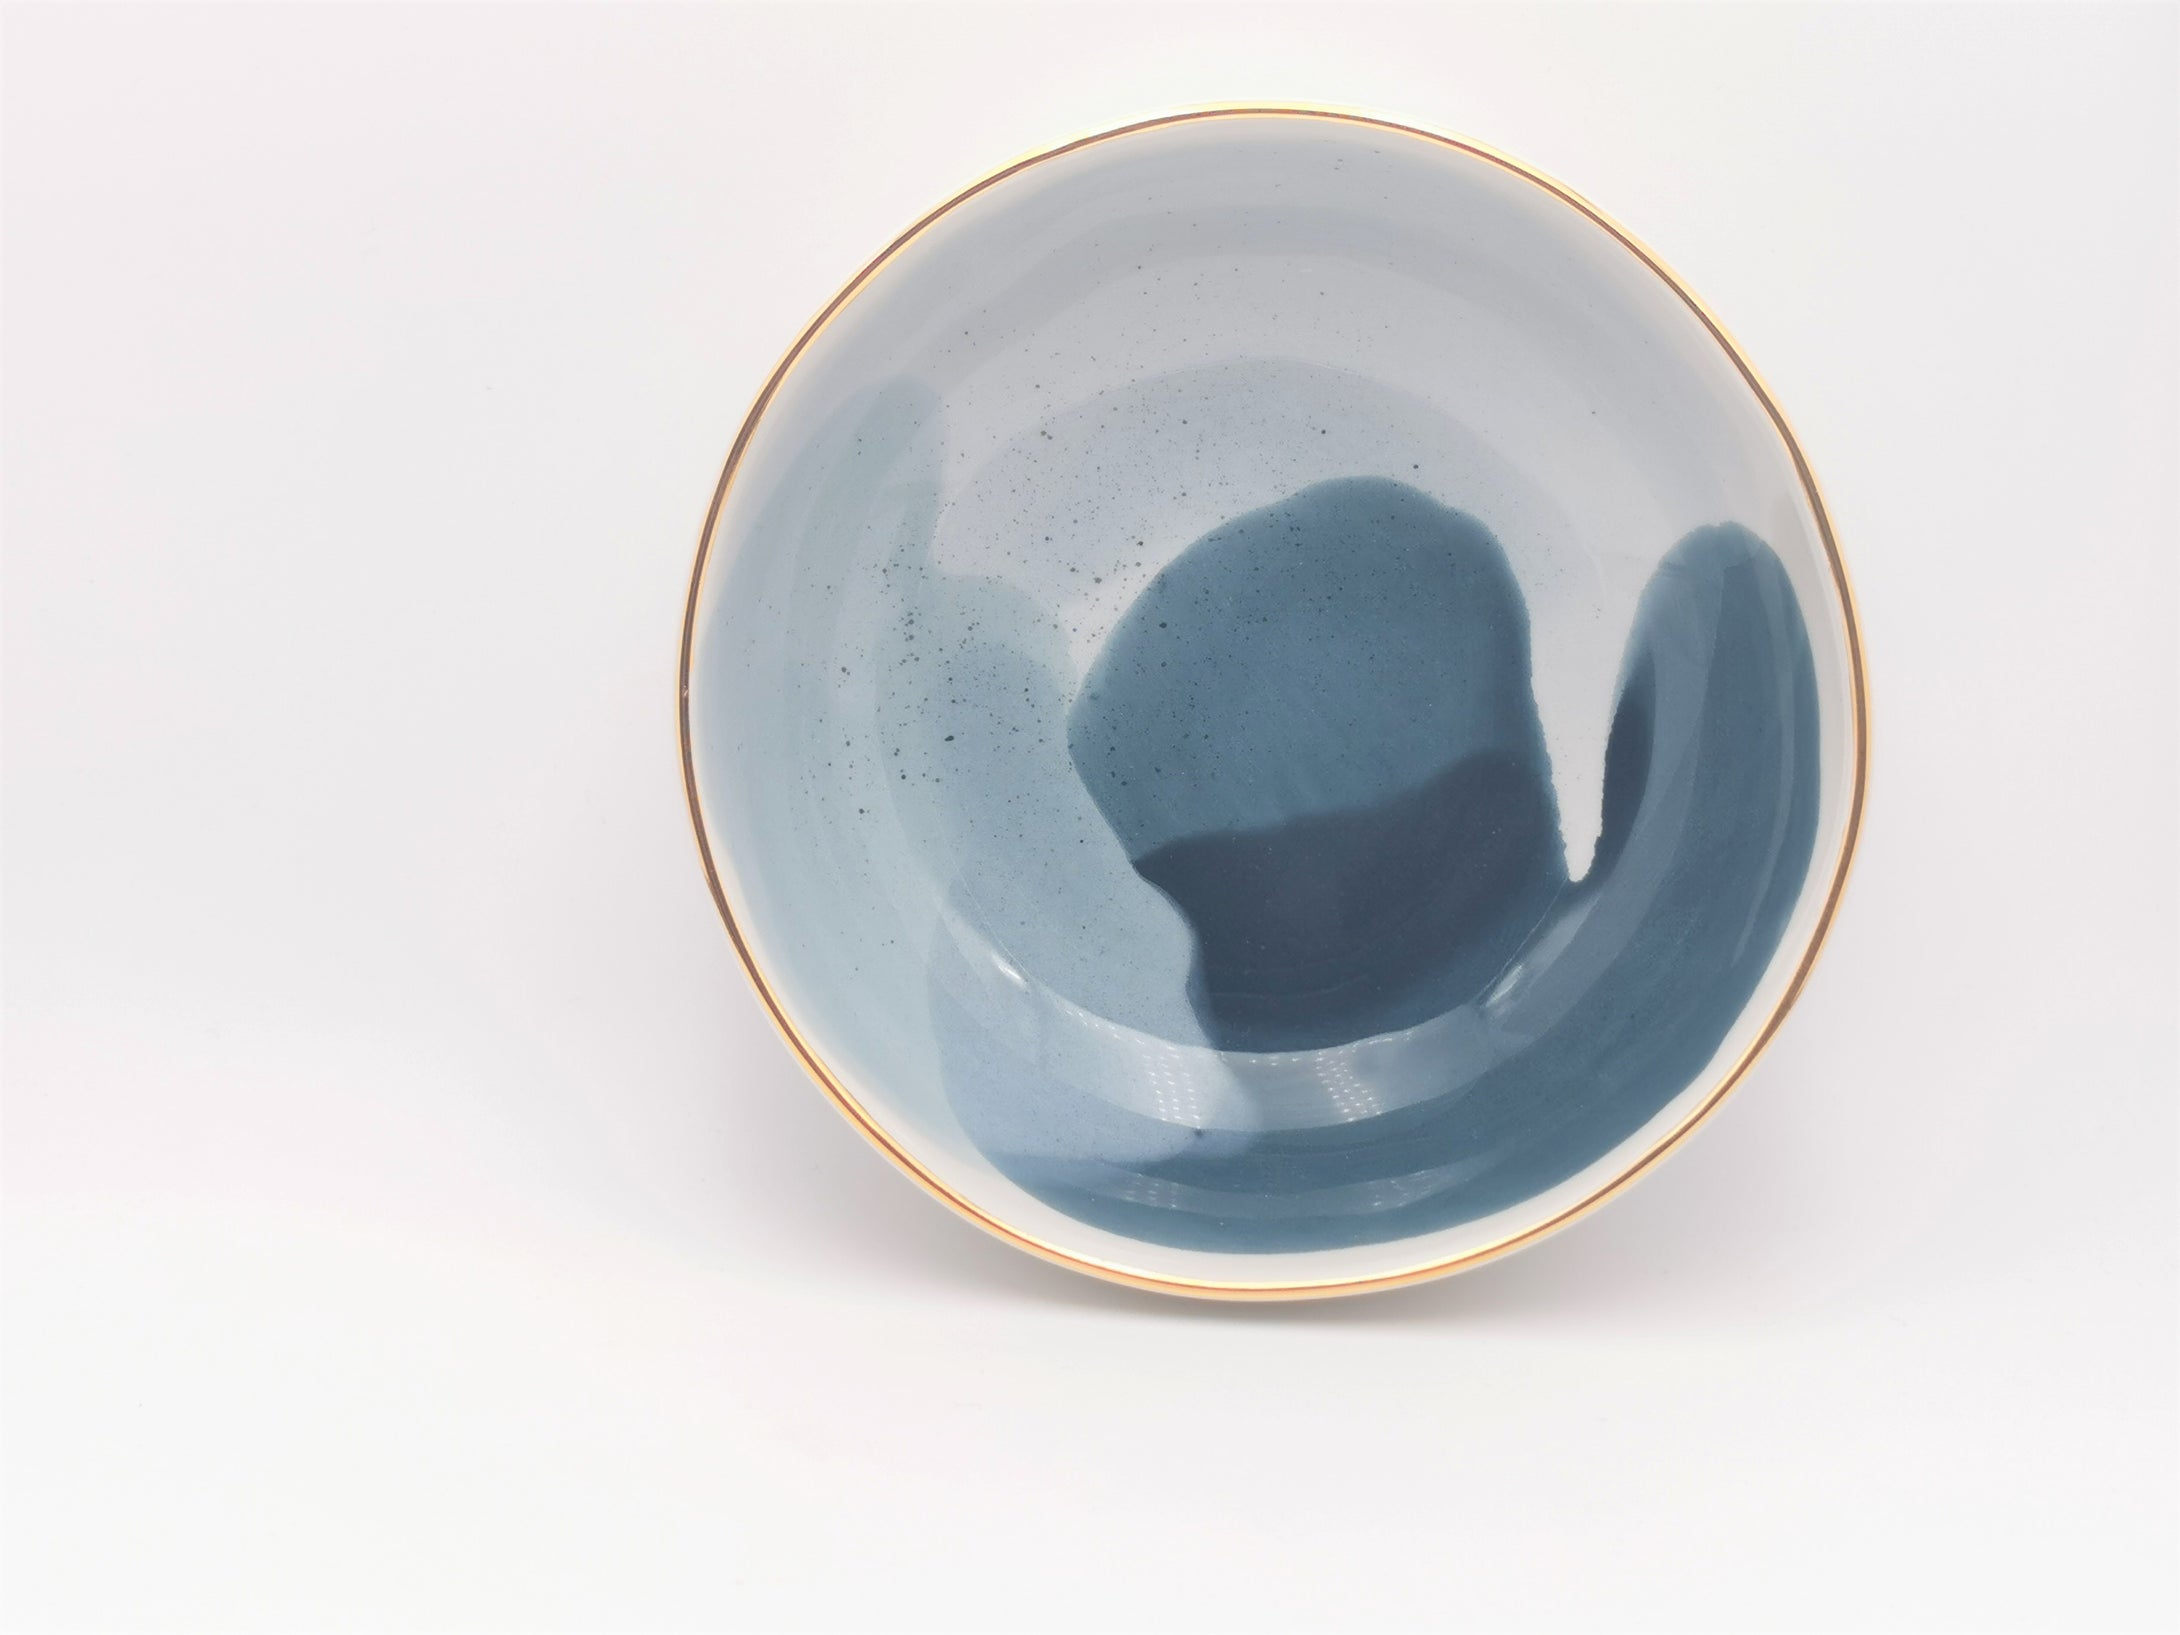 Bowl in Midnight Blues with Golden Lining - O I A  ceramics